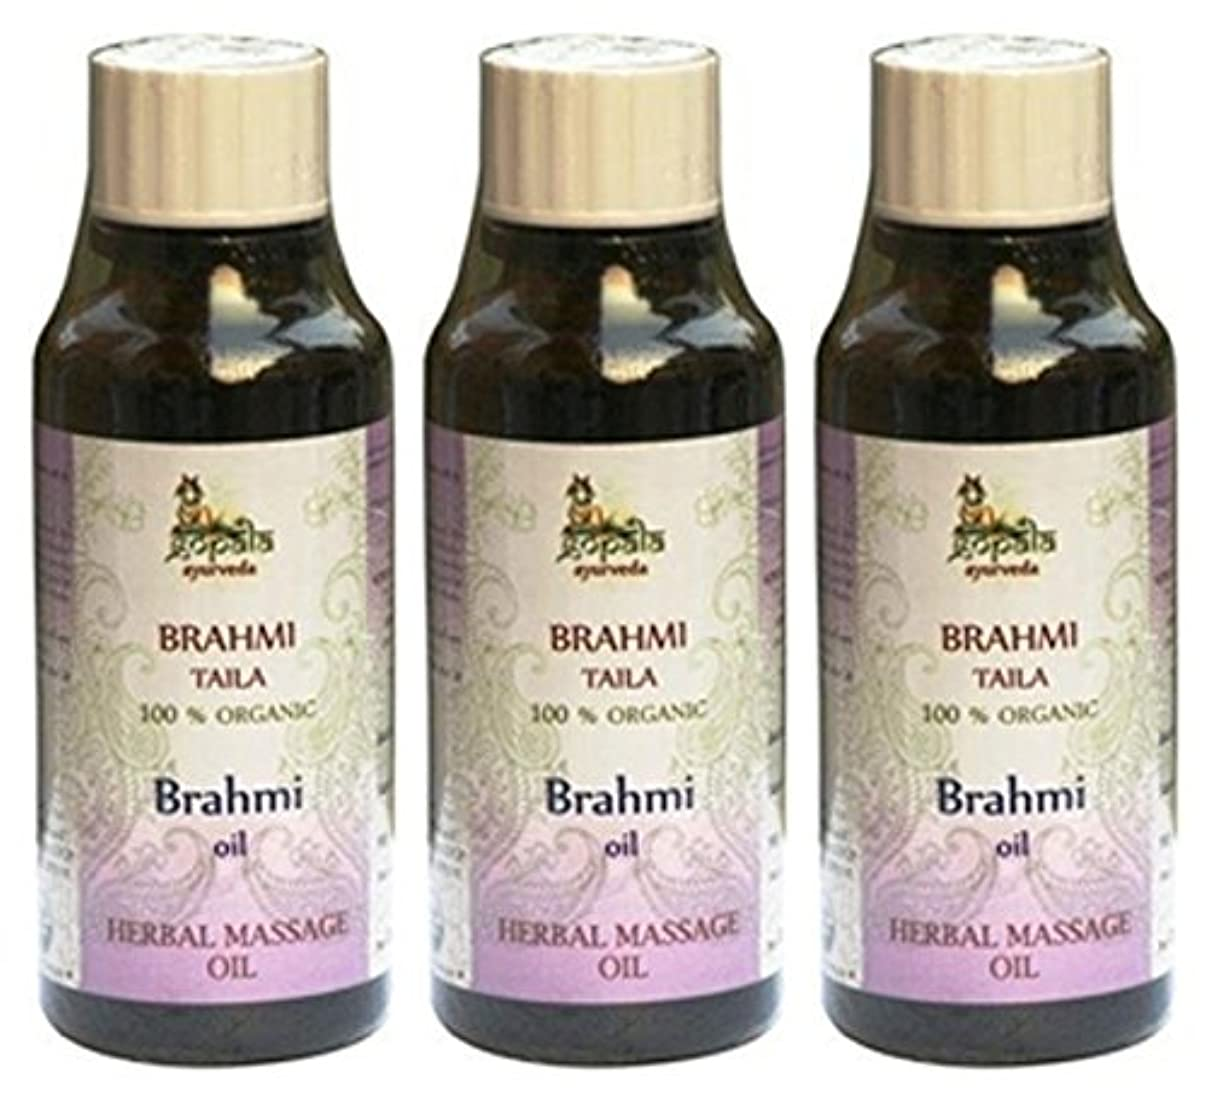 Brahmi Oil - 100% USDA CERTIFIED ORGANIC - Ayurvedic Head Massage Oil - 150ml (Pack of 3) - EXPEDITED DELIVERY